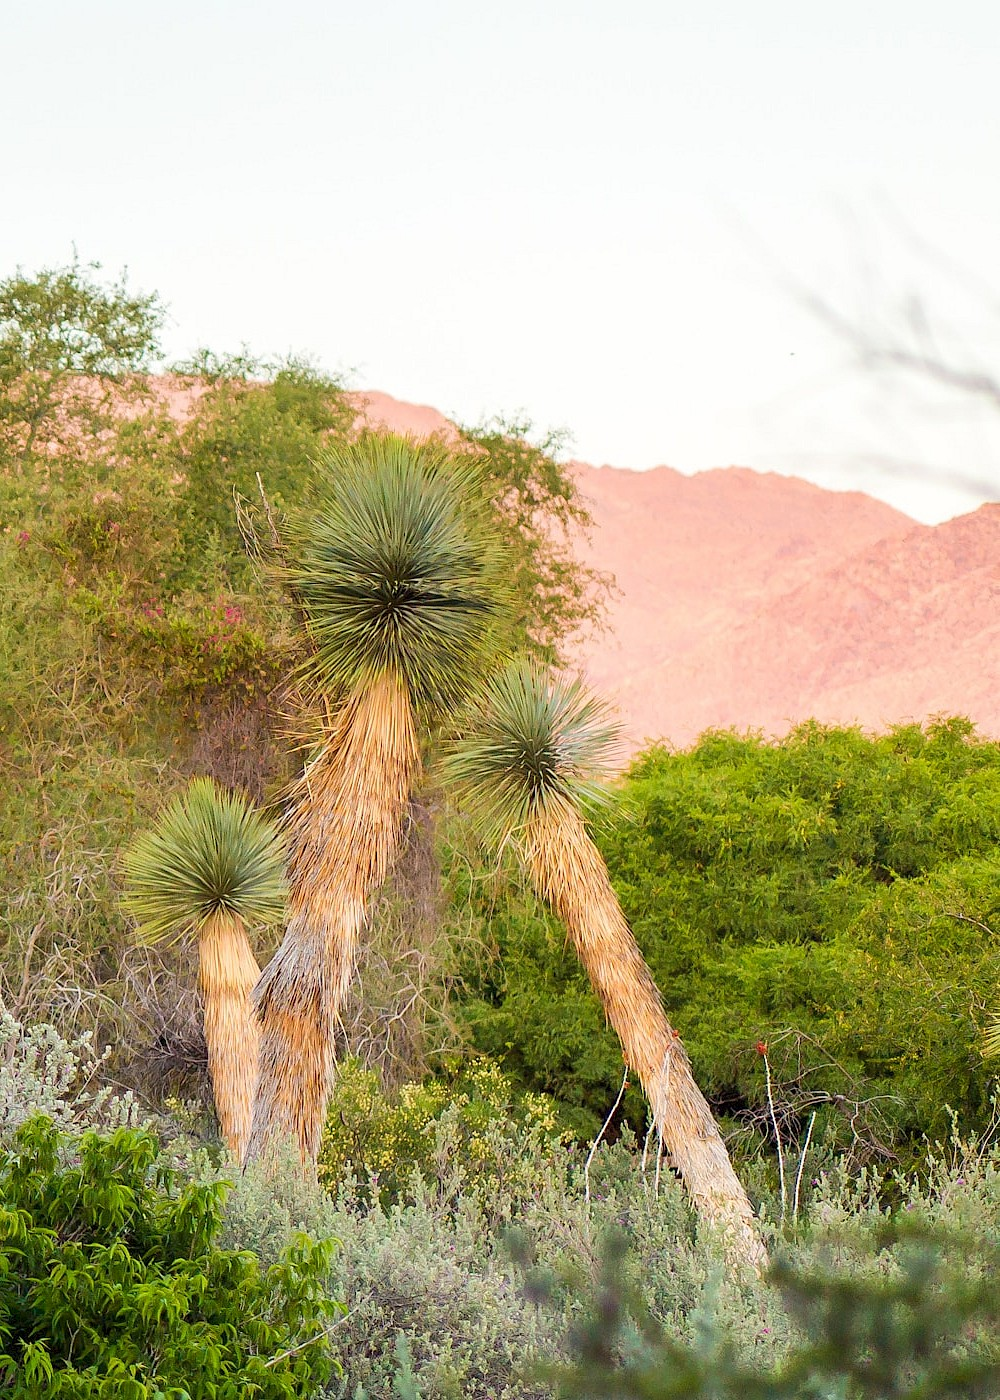 Botanical gardens and desert landscape at The Living Desert Zoo and Gardens.